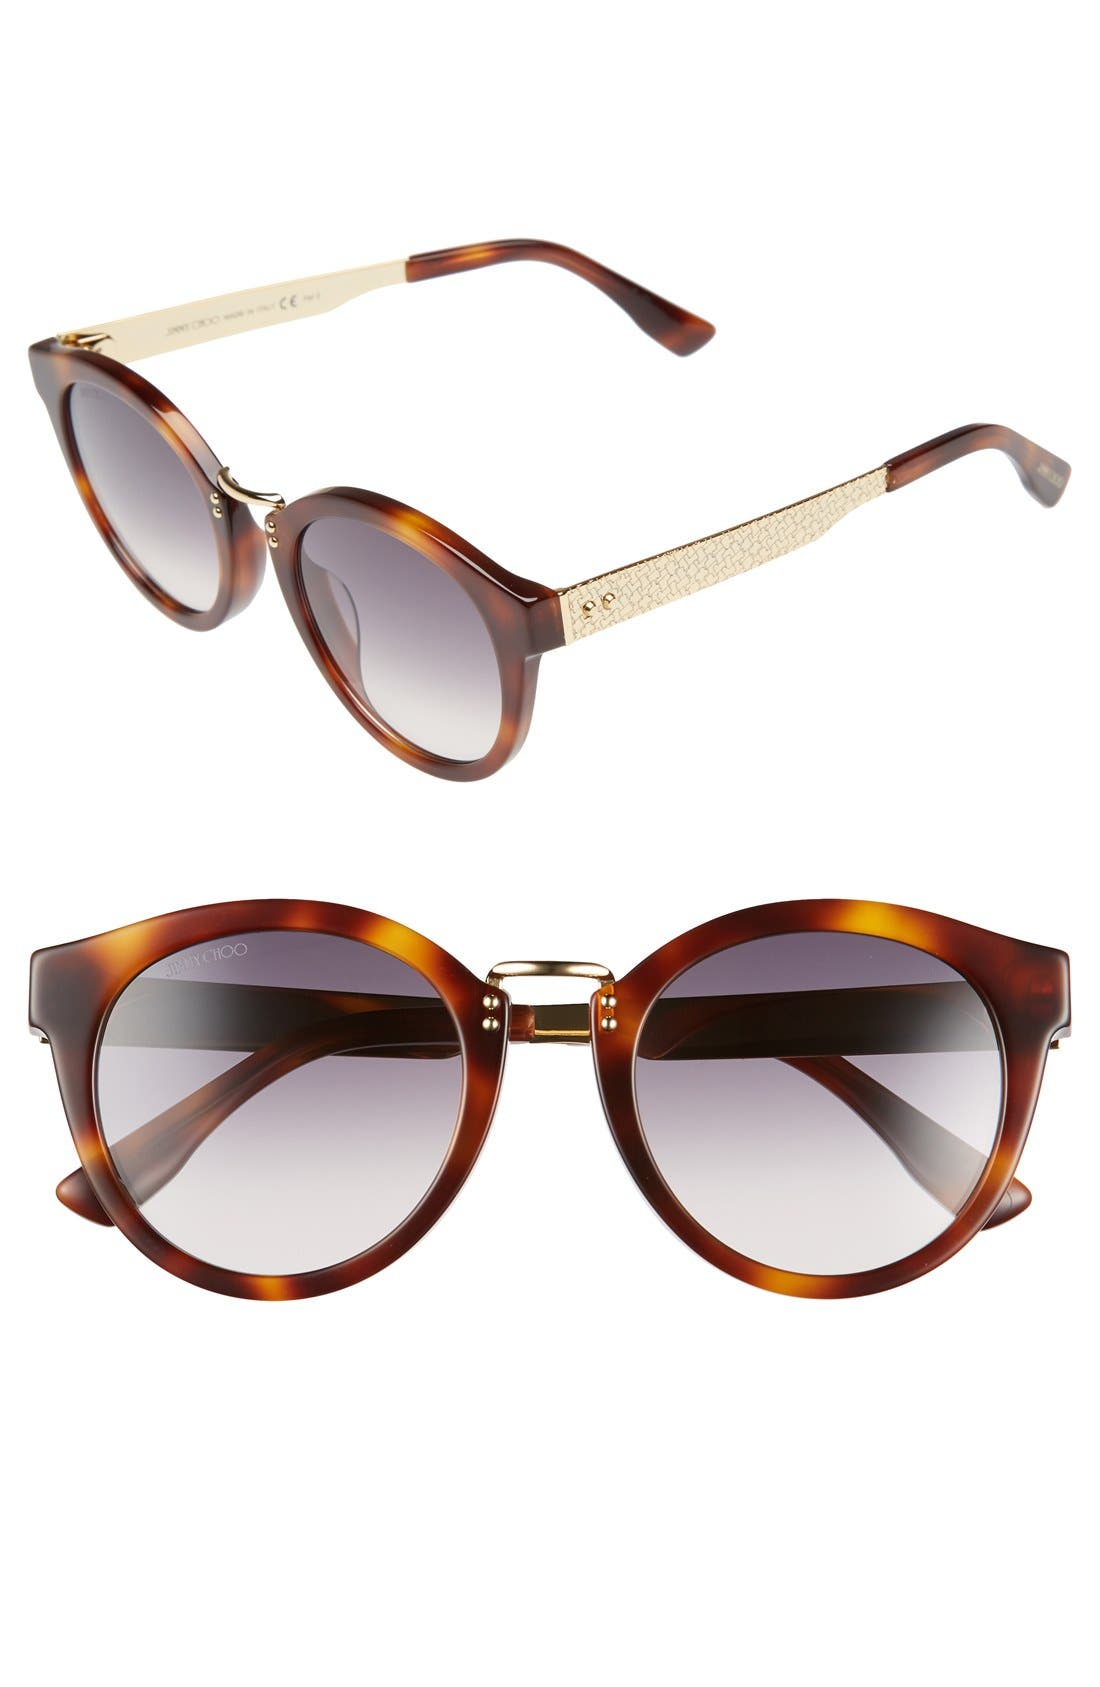 JIMMY CHOO Pepys 50mm Retro Sunglasses